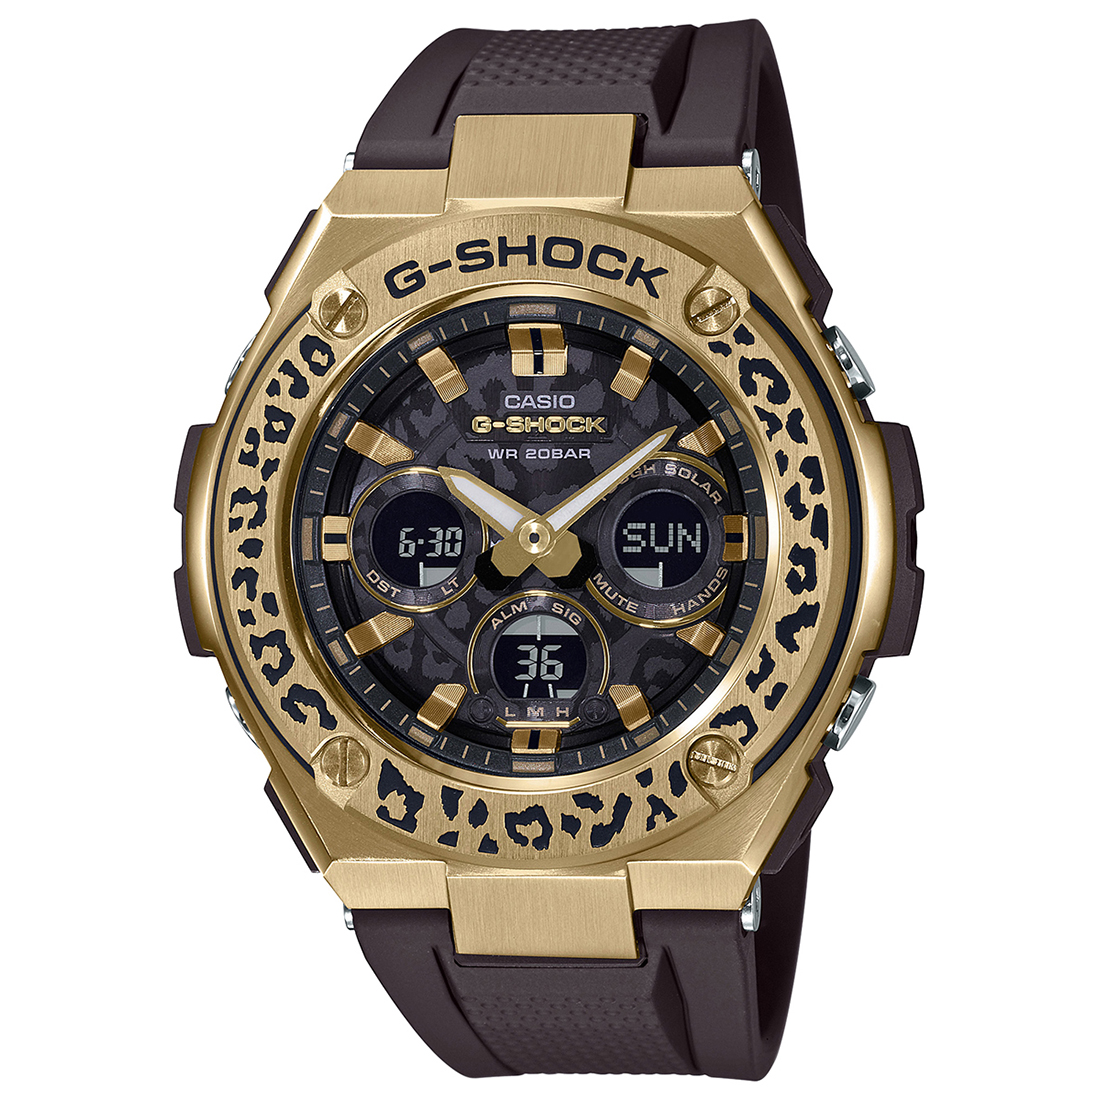 G1011 GST-S310WLP-1A9DR G-SHOCK WATCH-G1011